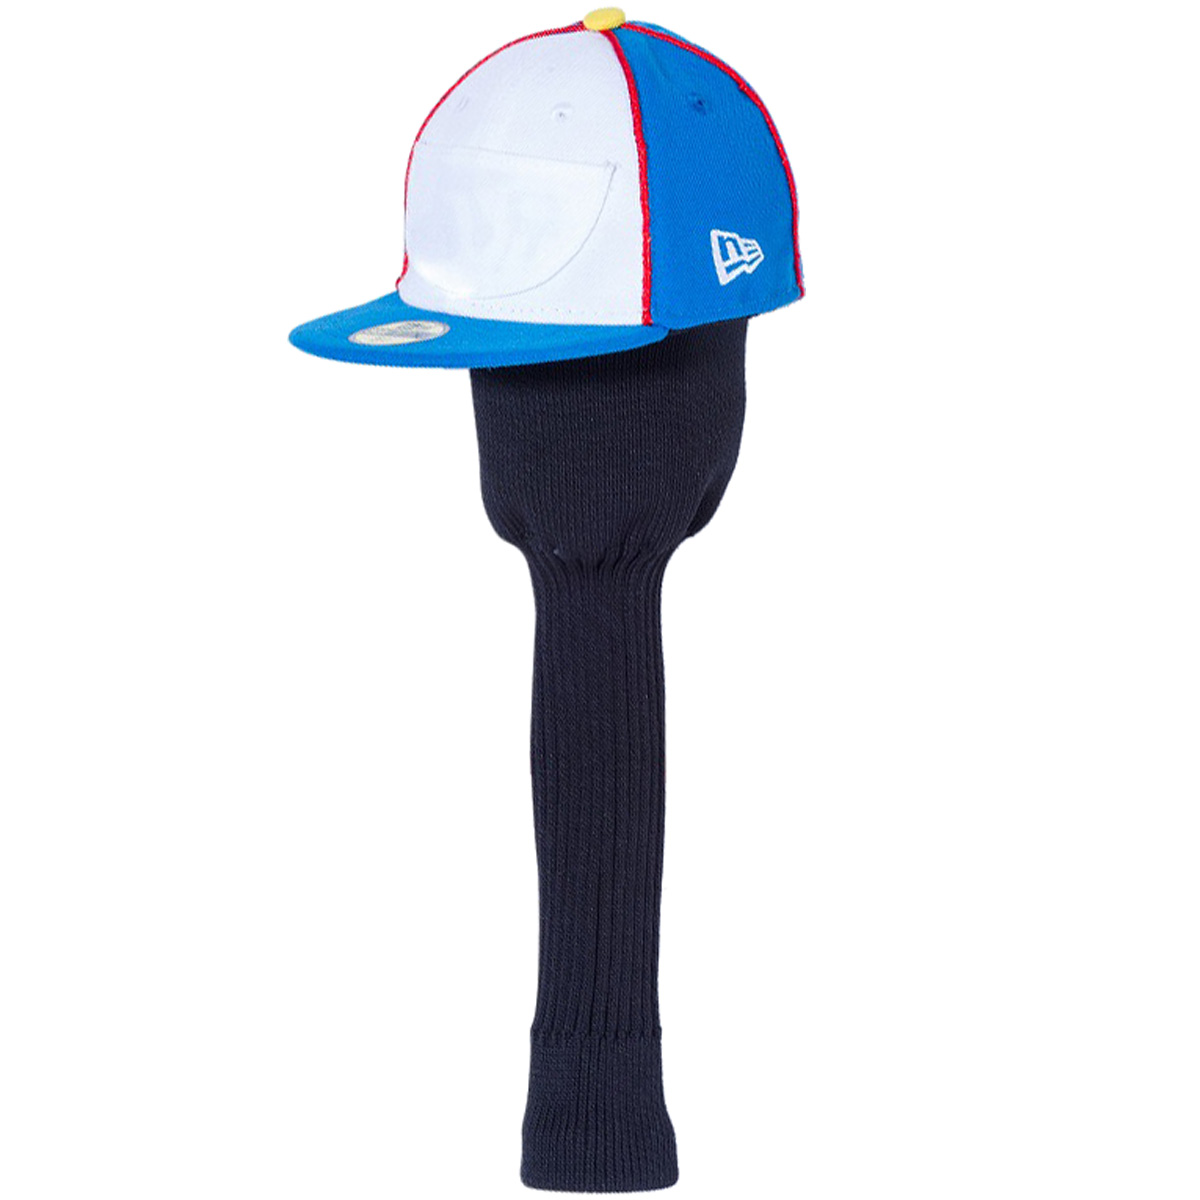 GOLF DORAEMON POCKET ヘッドカバー DR用